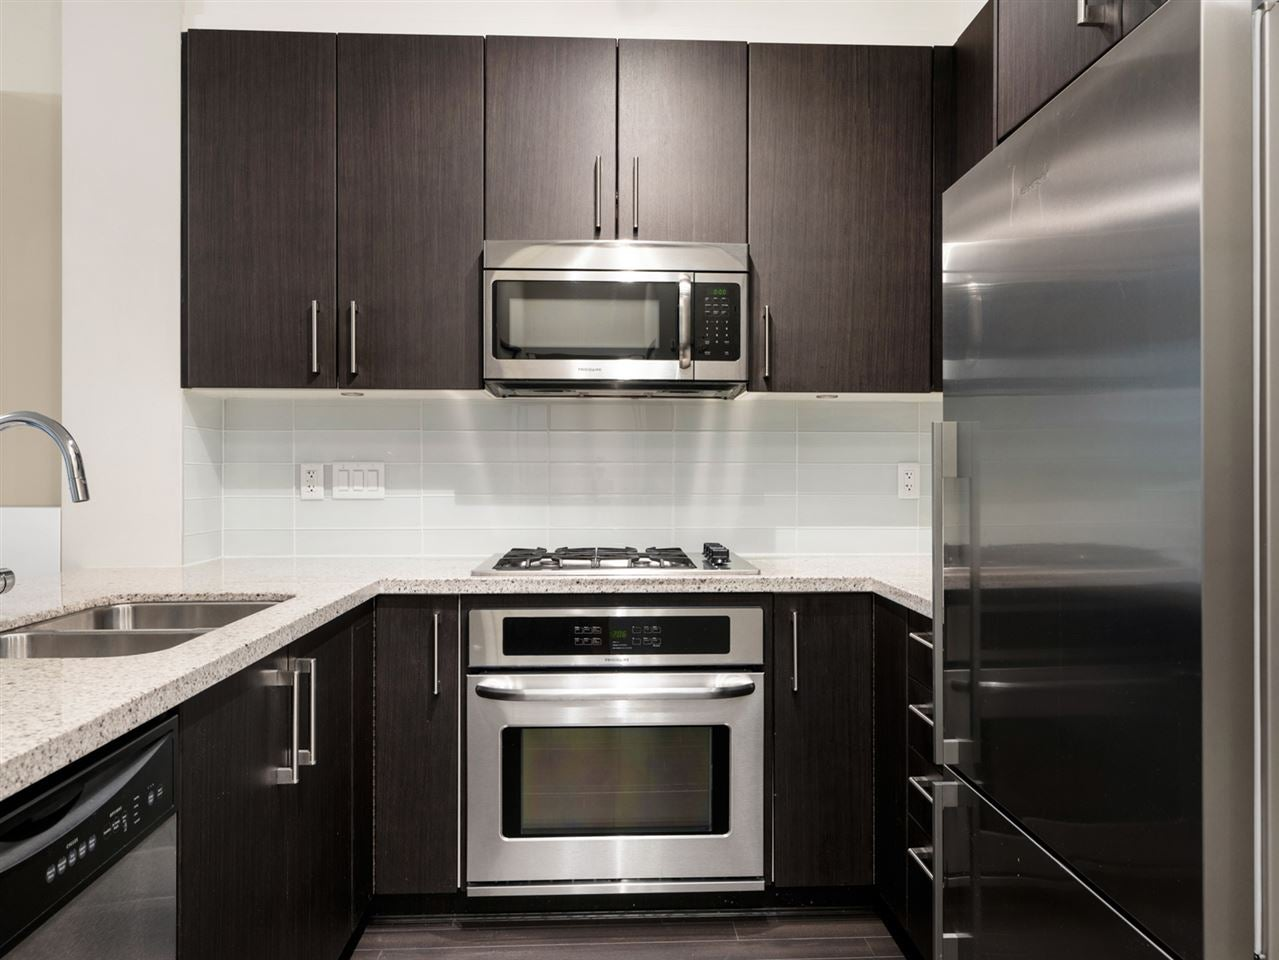 102 159 W 22ND STREET - Central Lonsdale Apartment/Condo for sale, 1 Bedroom (R2502448) - #23